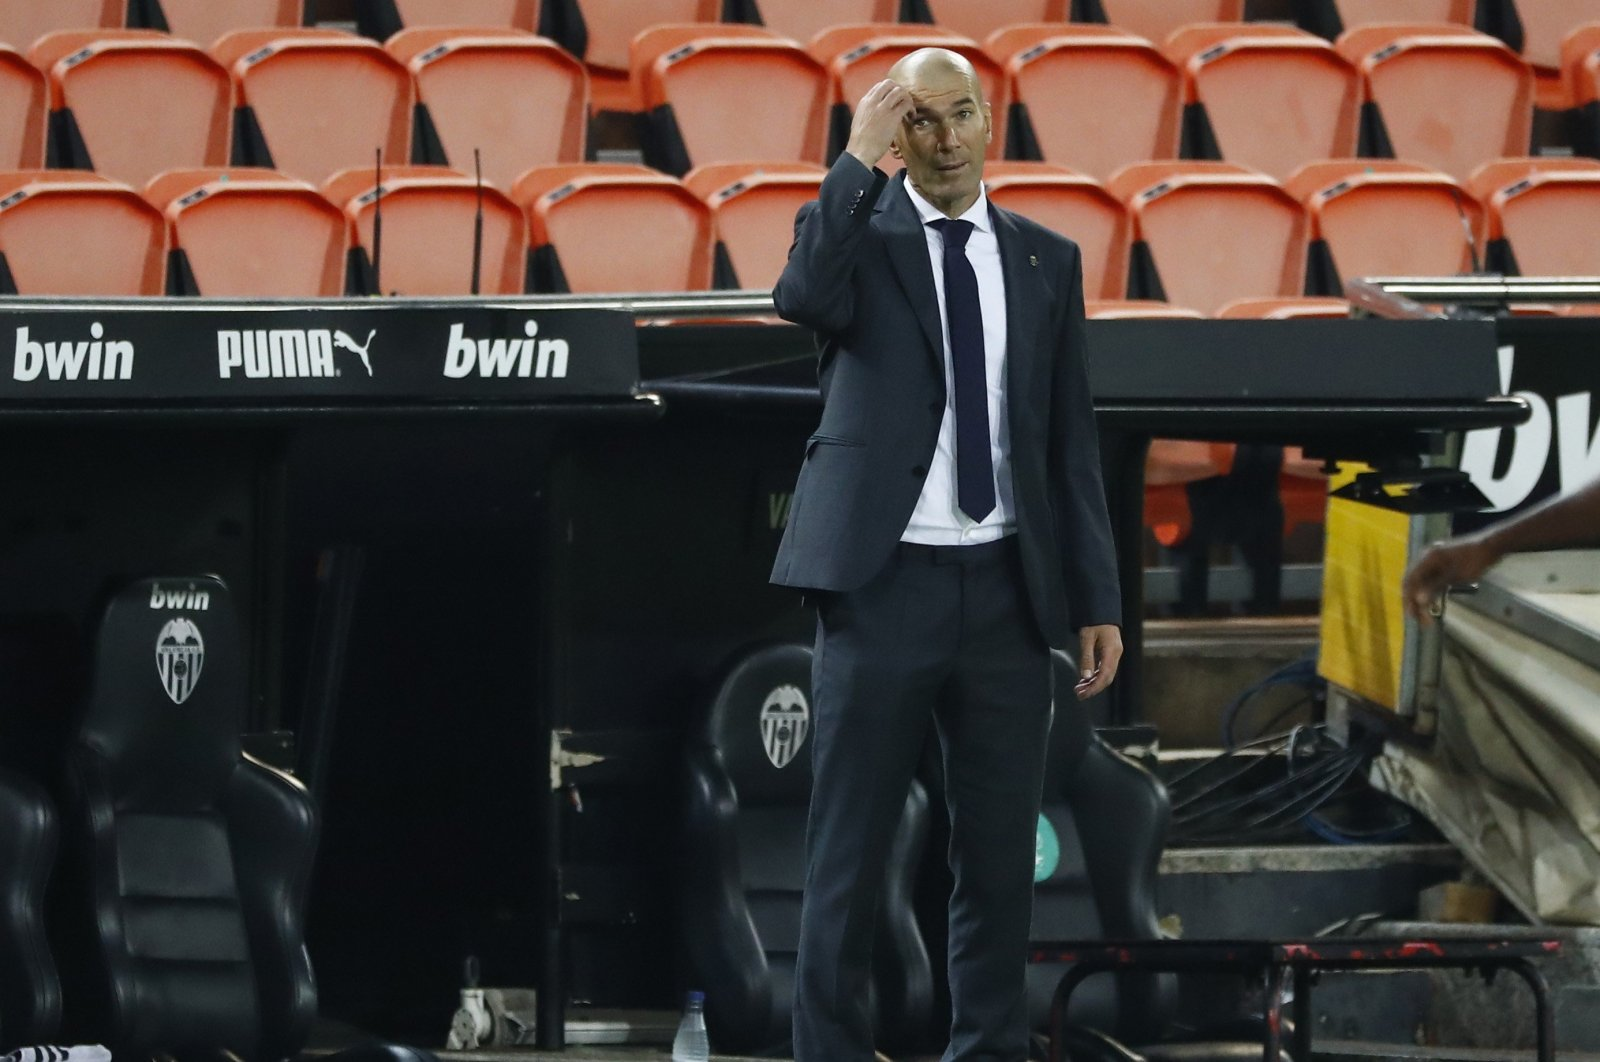 Zinedine Zidane reacts during a match between Real Madrid and Valencia, in Valencia, Spain, Nov. 8, 2020. (REUTERS PHOTO)